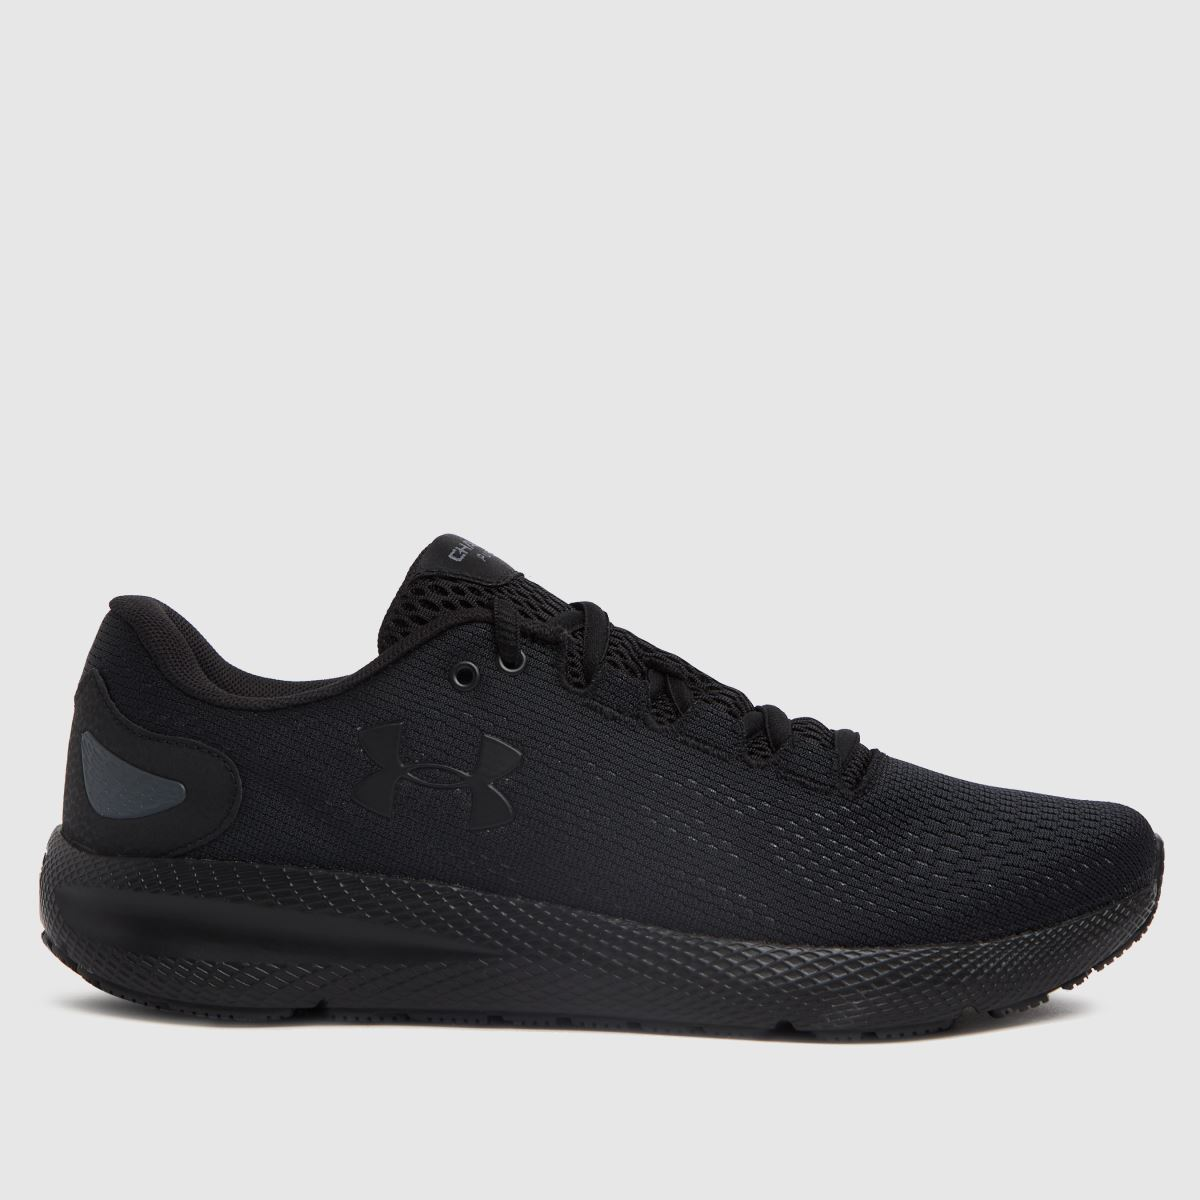 Under Armour Black Charged Pursuit 2 Trainers